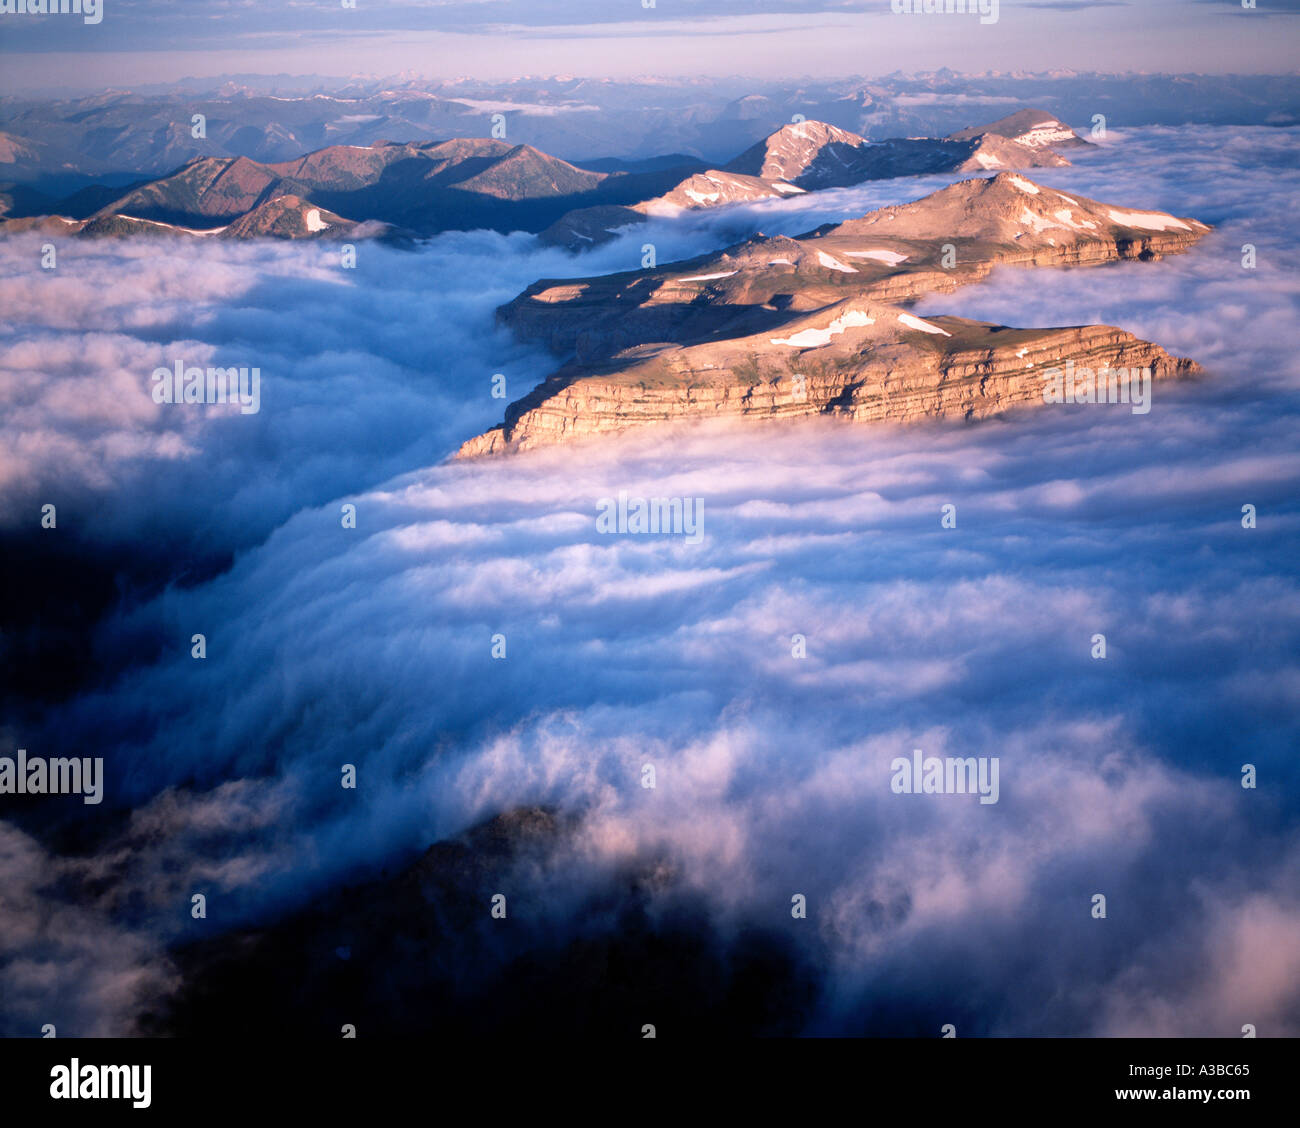 Fog Continental Divide Peaks Bob Marshall Wilderness Montana - Stock Image